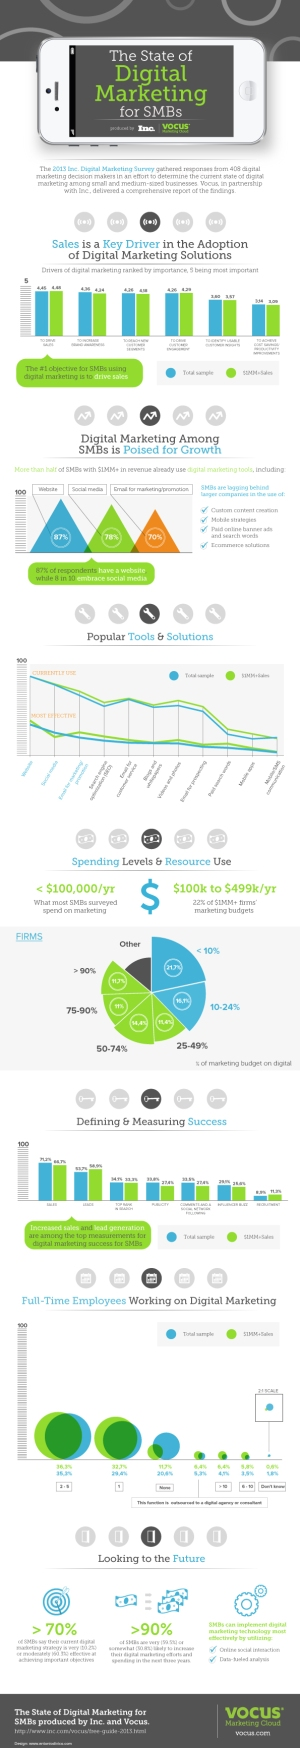 State-of-Digital-Marketing-Infographic1